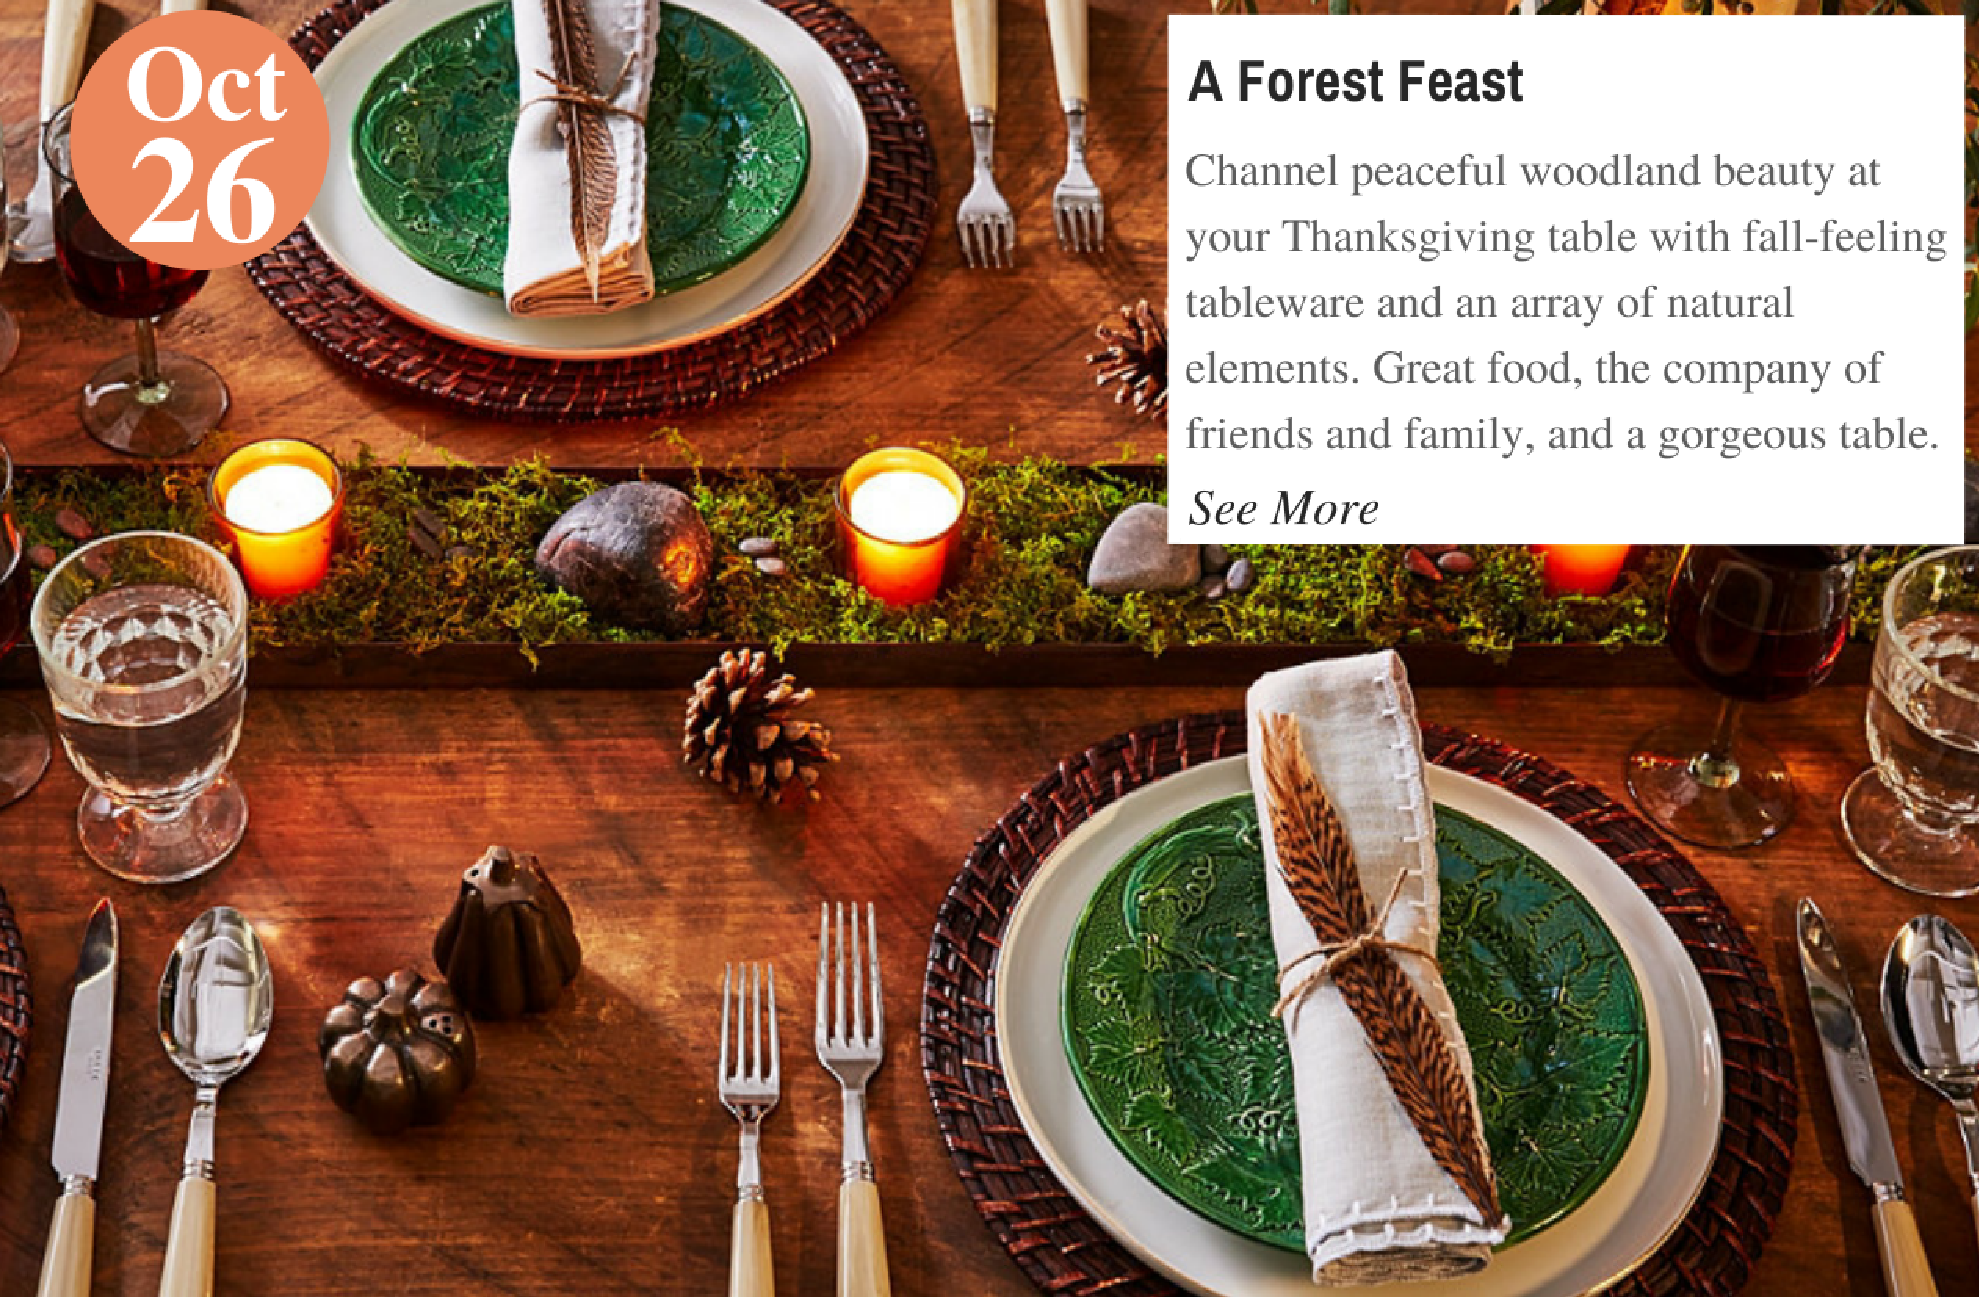 A Forest Feast